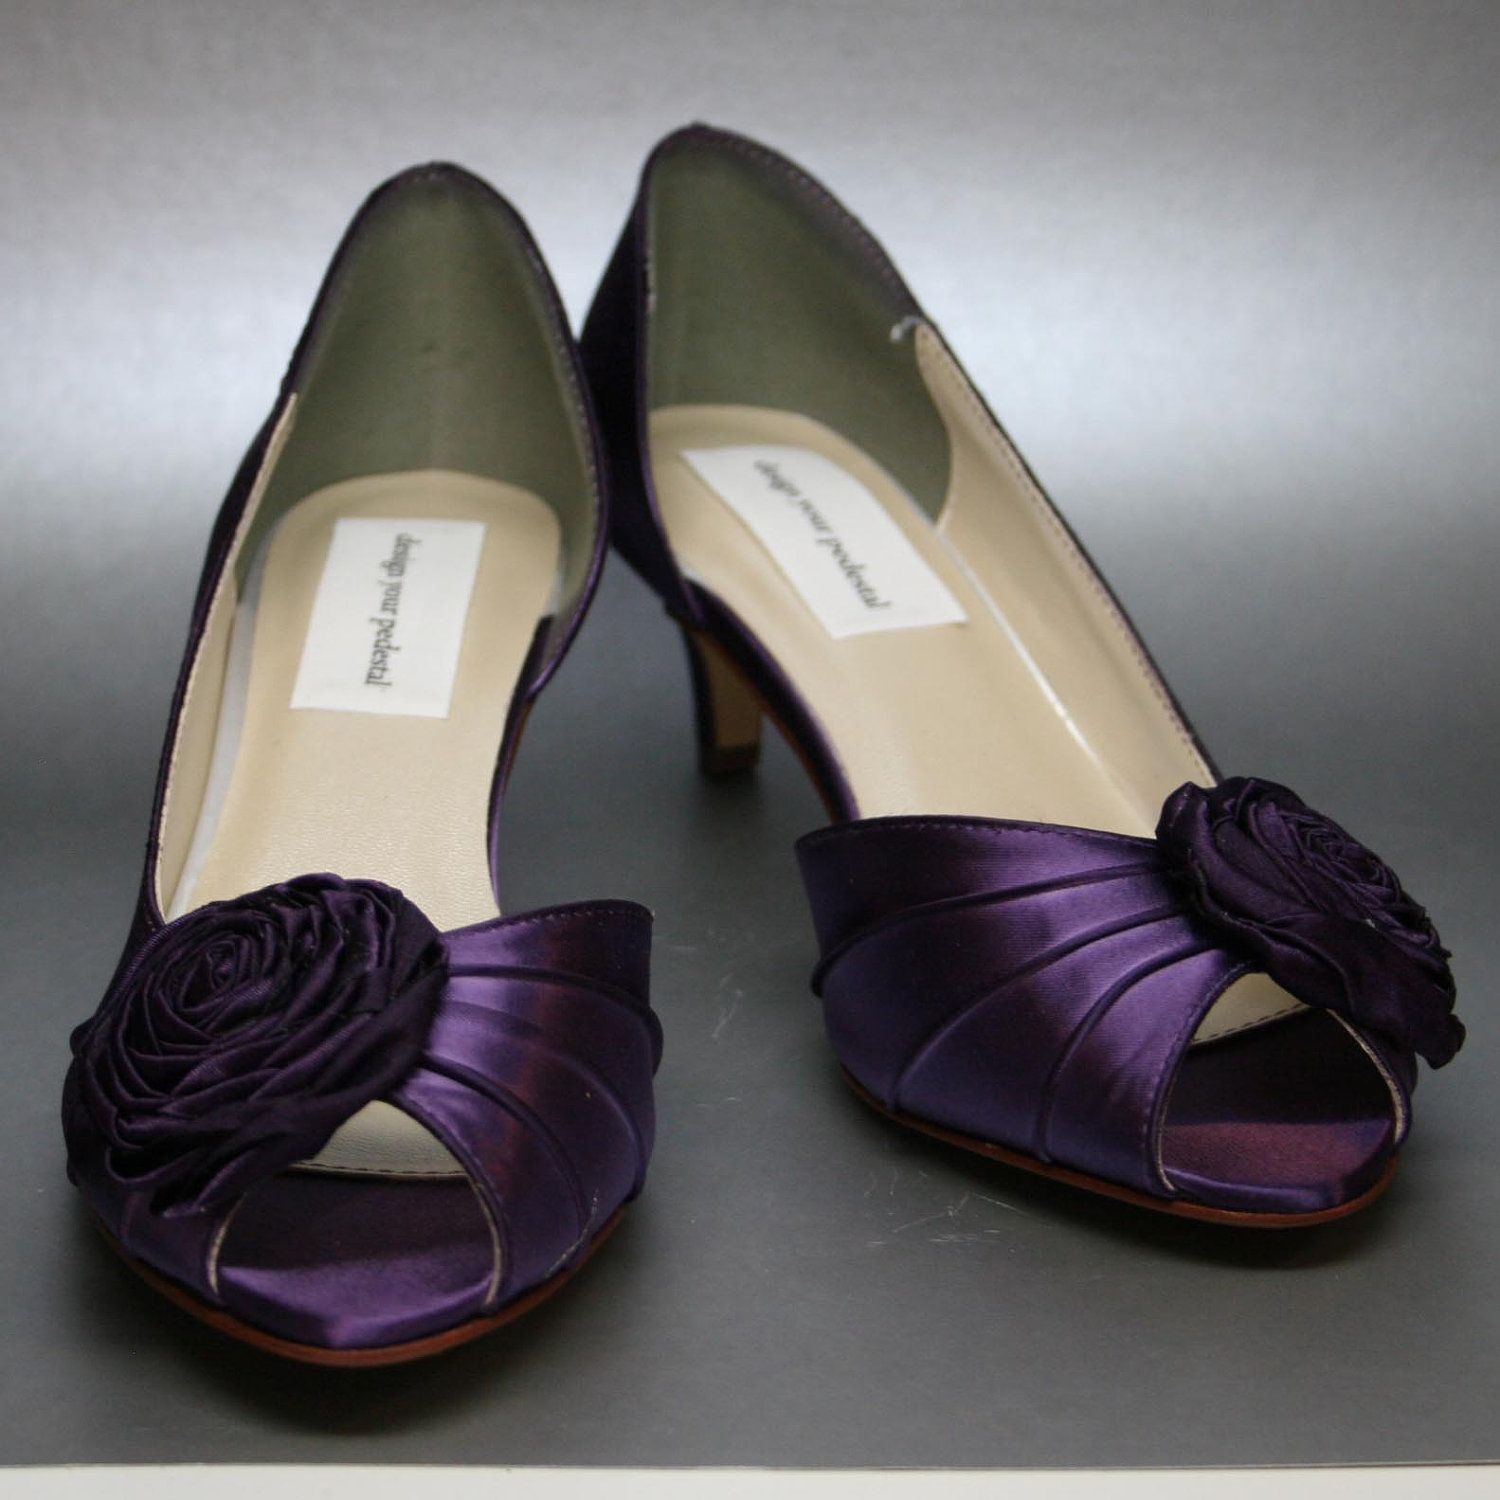 Buy cheap stiletto heels From Shoespie. Here offers a lots of sexy stiletto high heel shoes with fast shipping. Such as cheap red stiletto heels, black stiletto heels, sexy silver stiletto heels. Purple Pointed Toe Rhinestone Line-Style Buckle Stiletto Heels Pink Casual Plain Peep Toe Stiletto Heel .